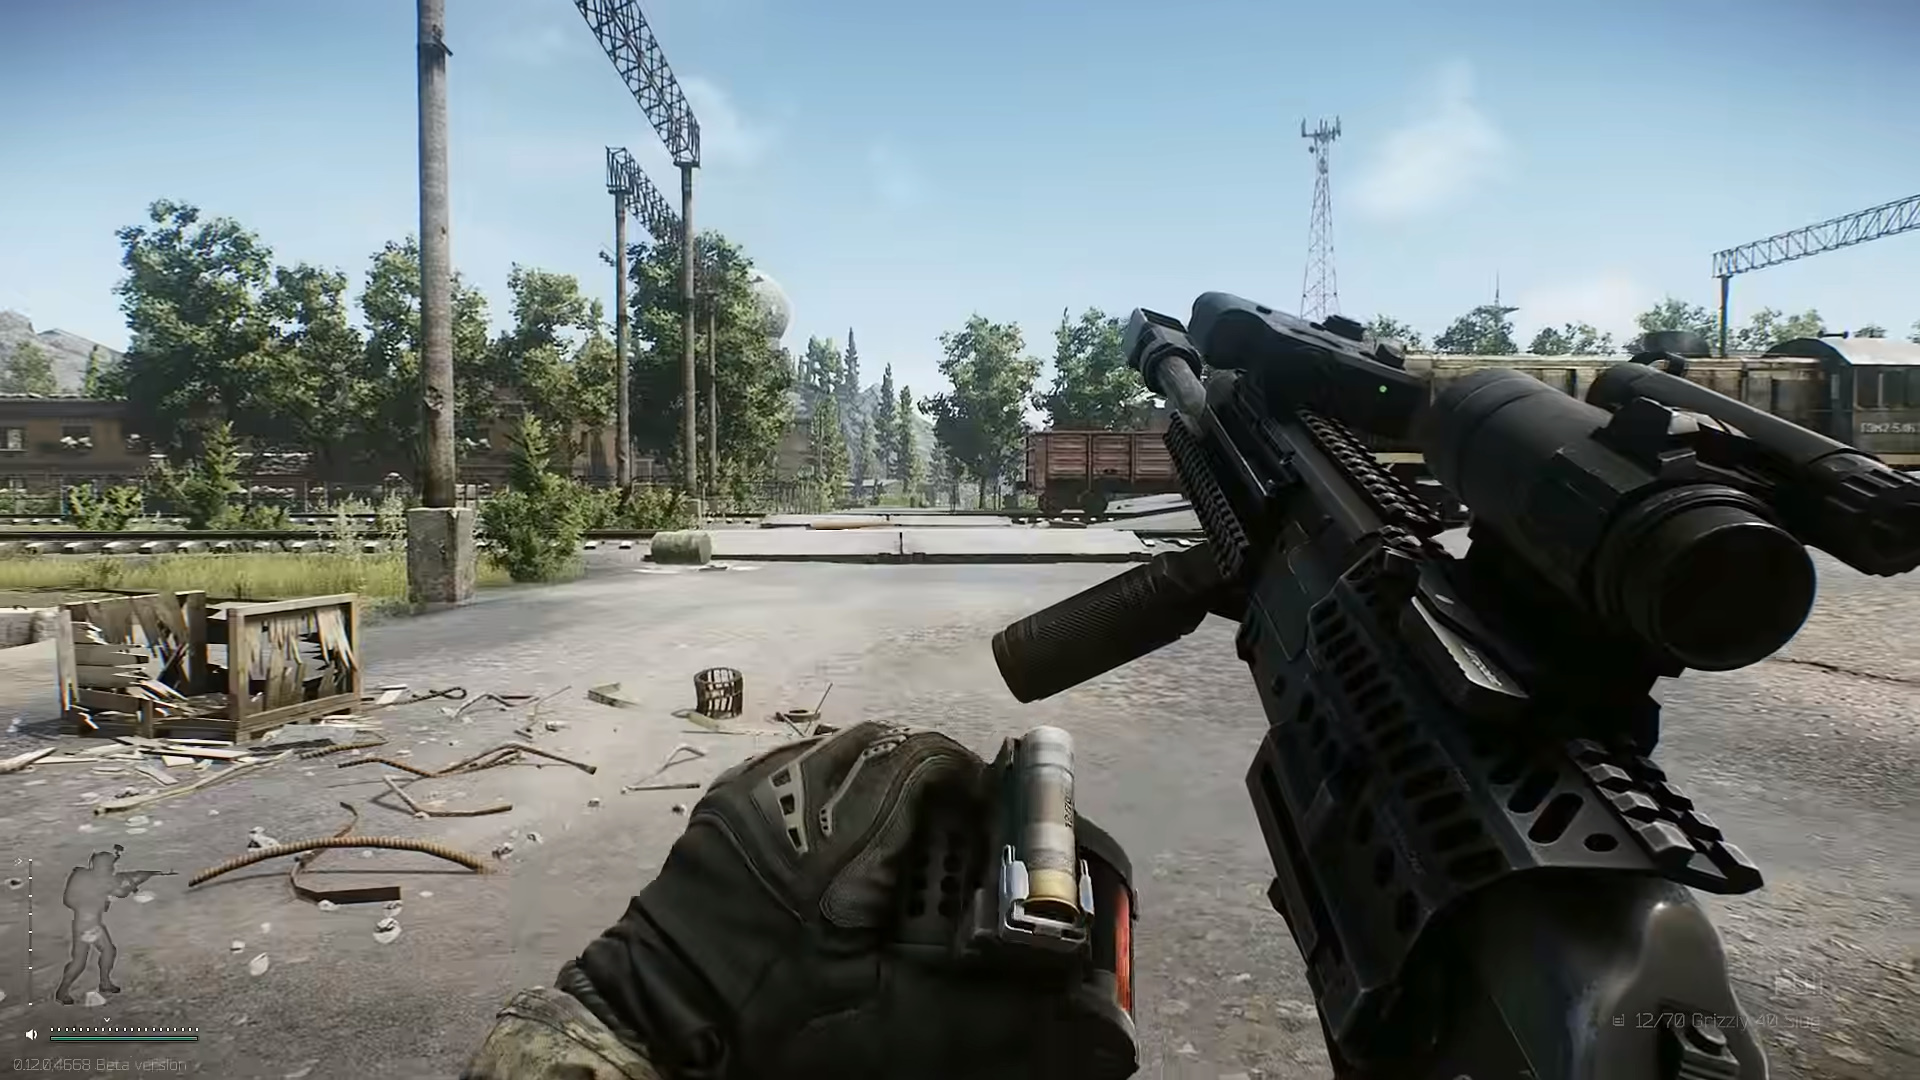 Escape from Tarkov is currently the most-watched game on Twitch